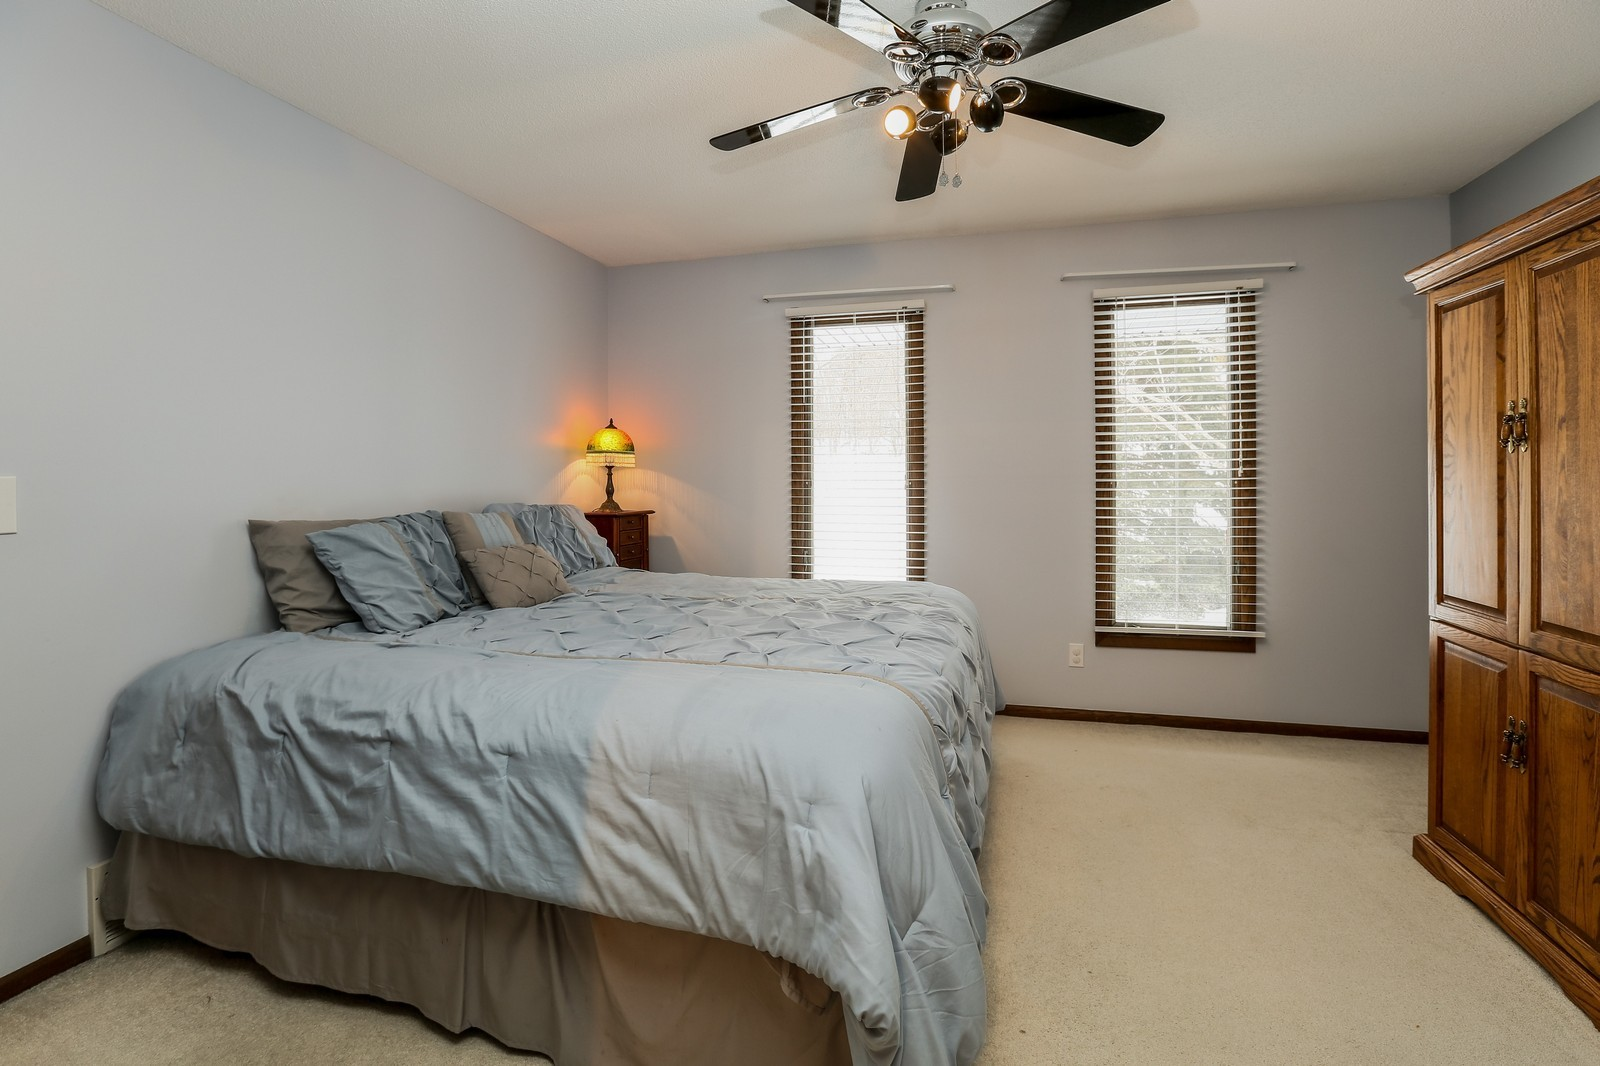 Real Estate Photography - 3250 Williams Lane, Minnetrista, MN, 55364 - Master Bedroom